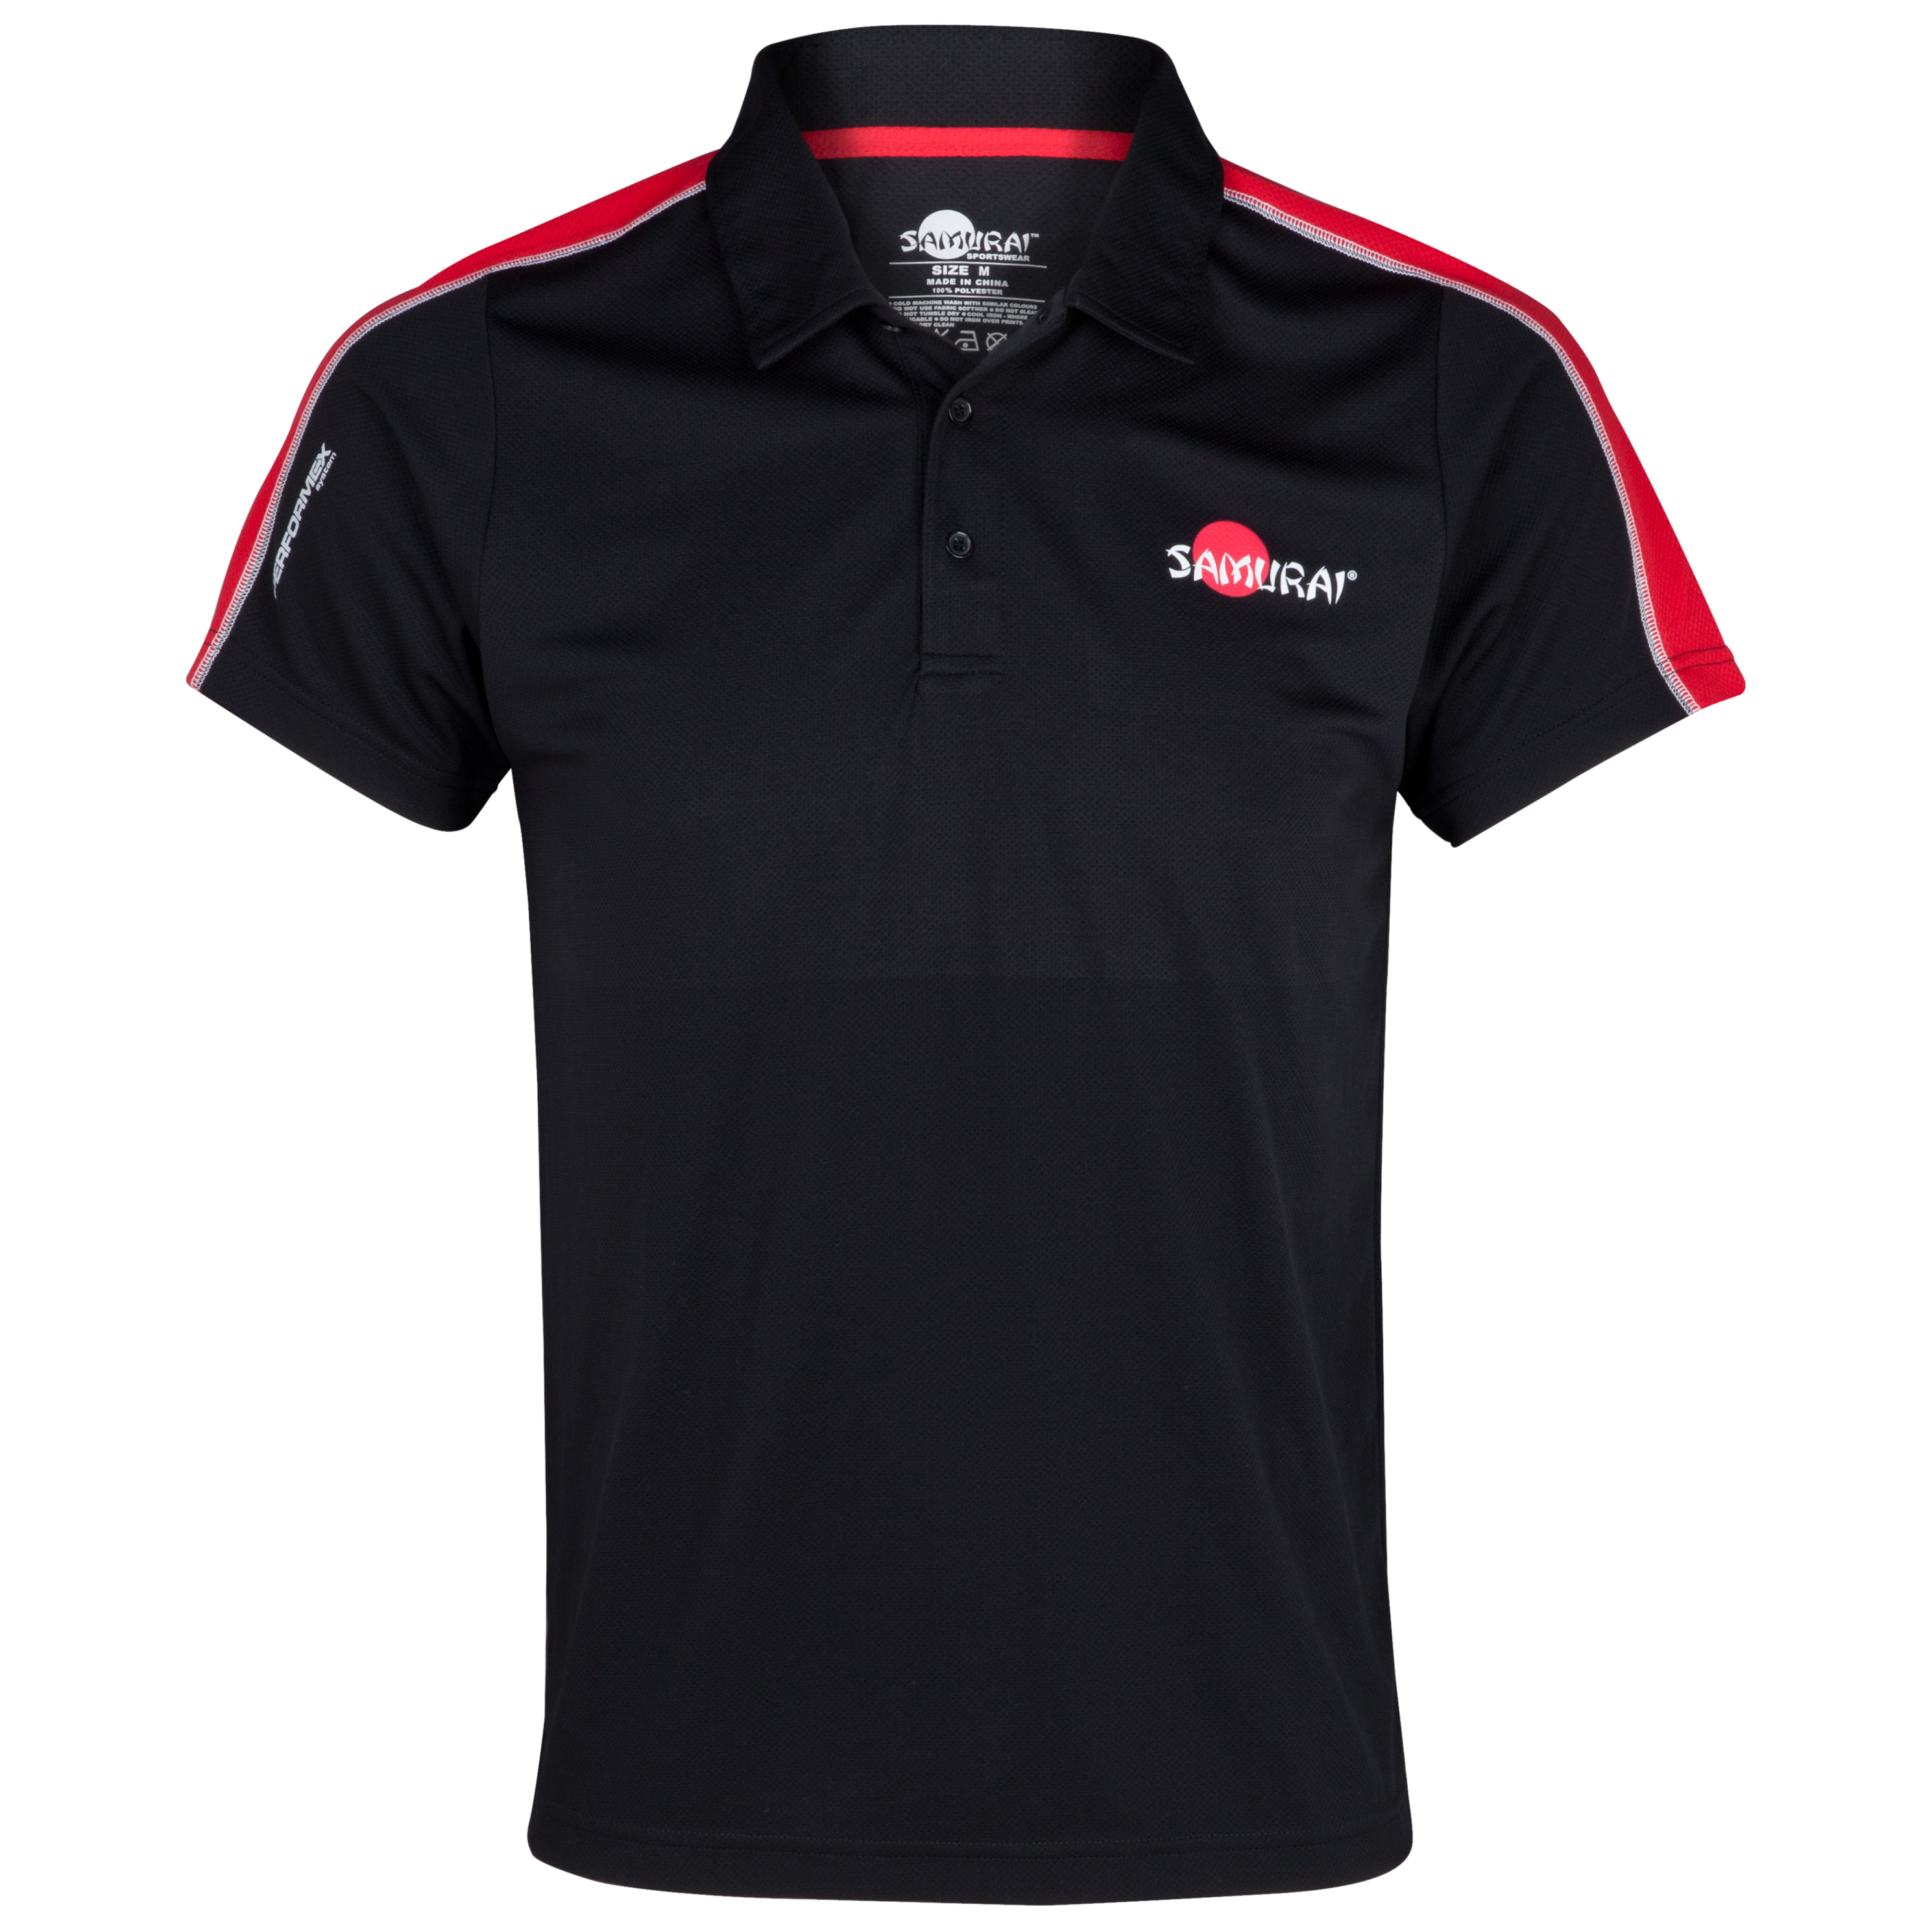 Samurai Rugby Pitchside Polo - Black